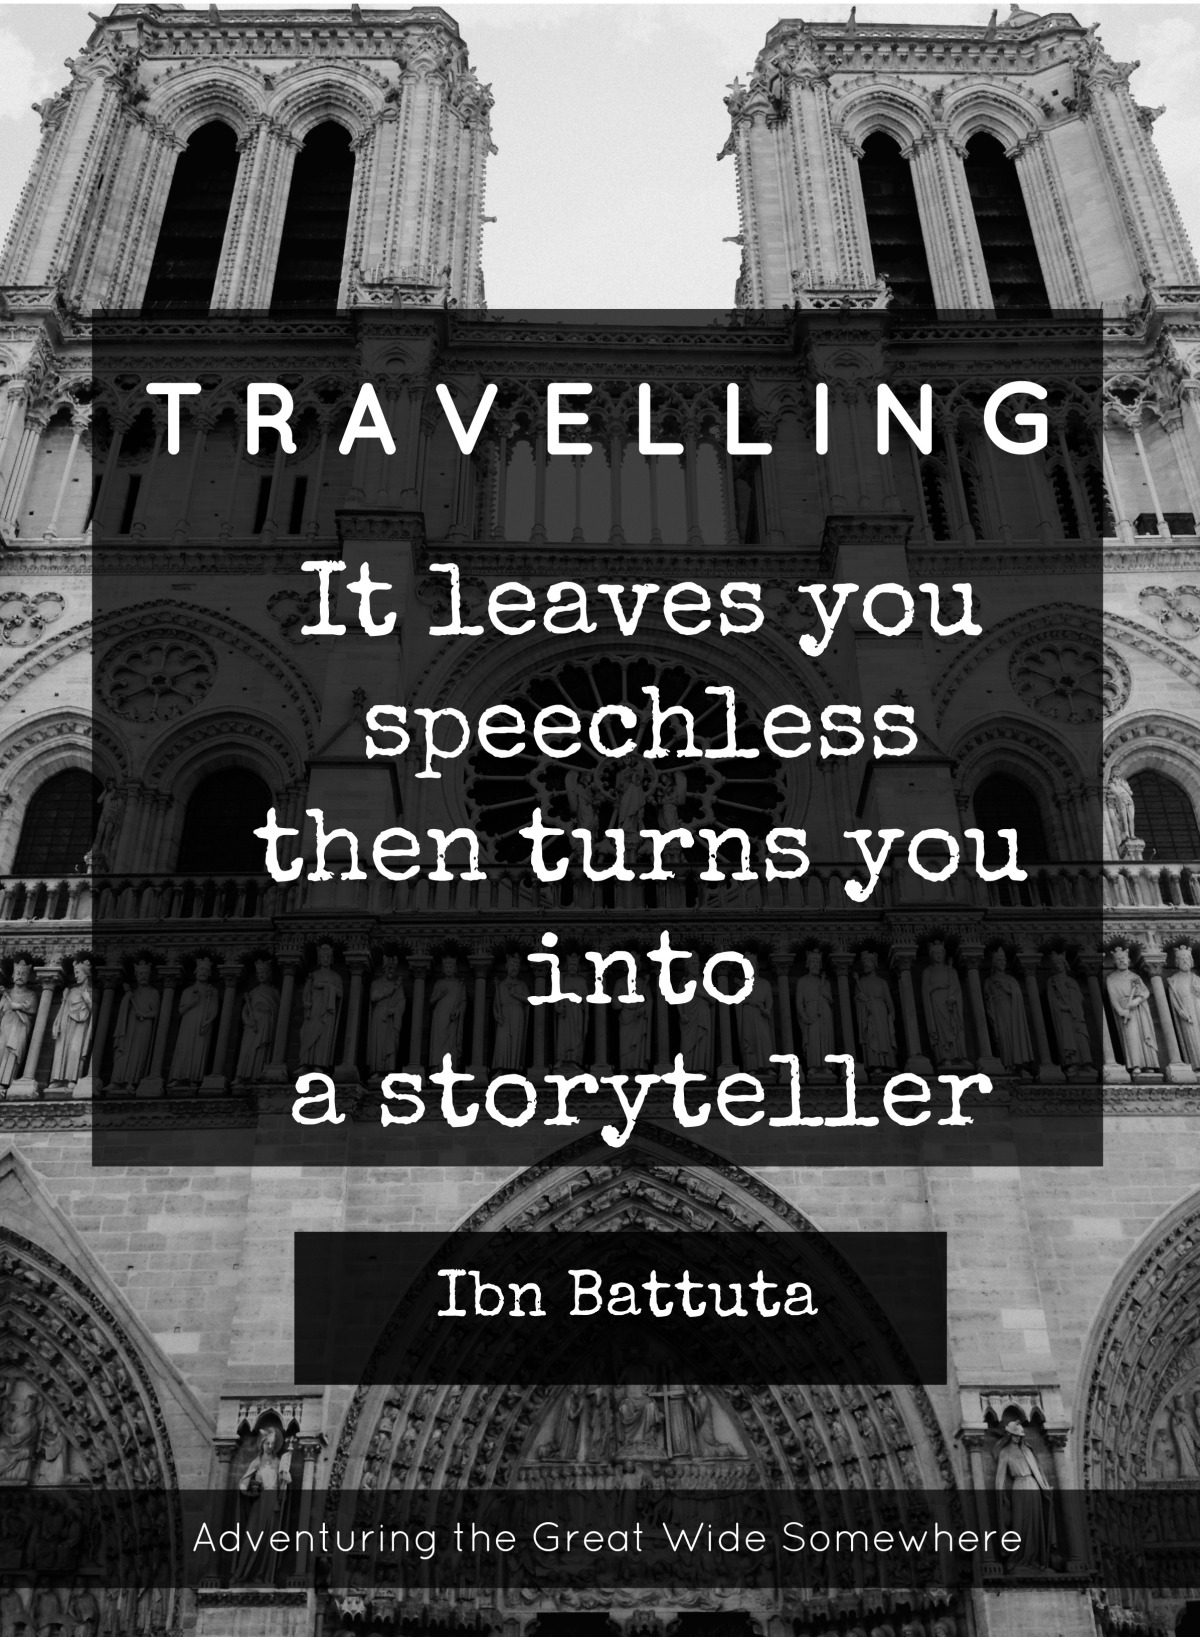 Ibn Battuta Travel Leaves You Speechless Quote